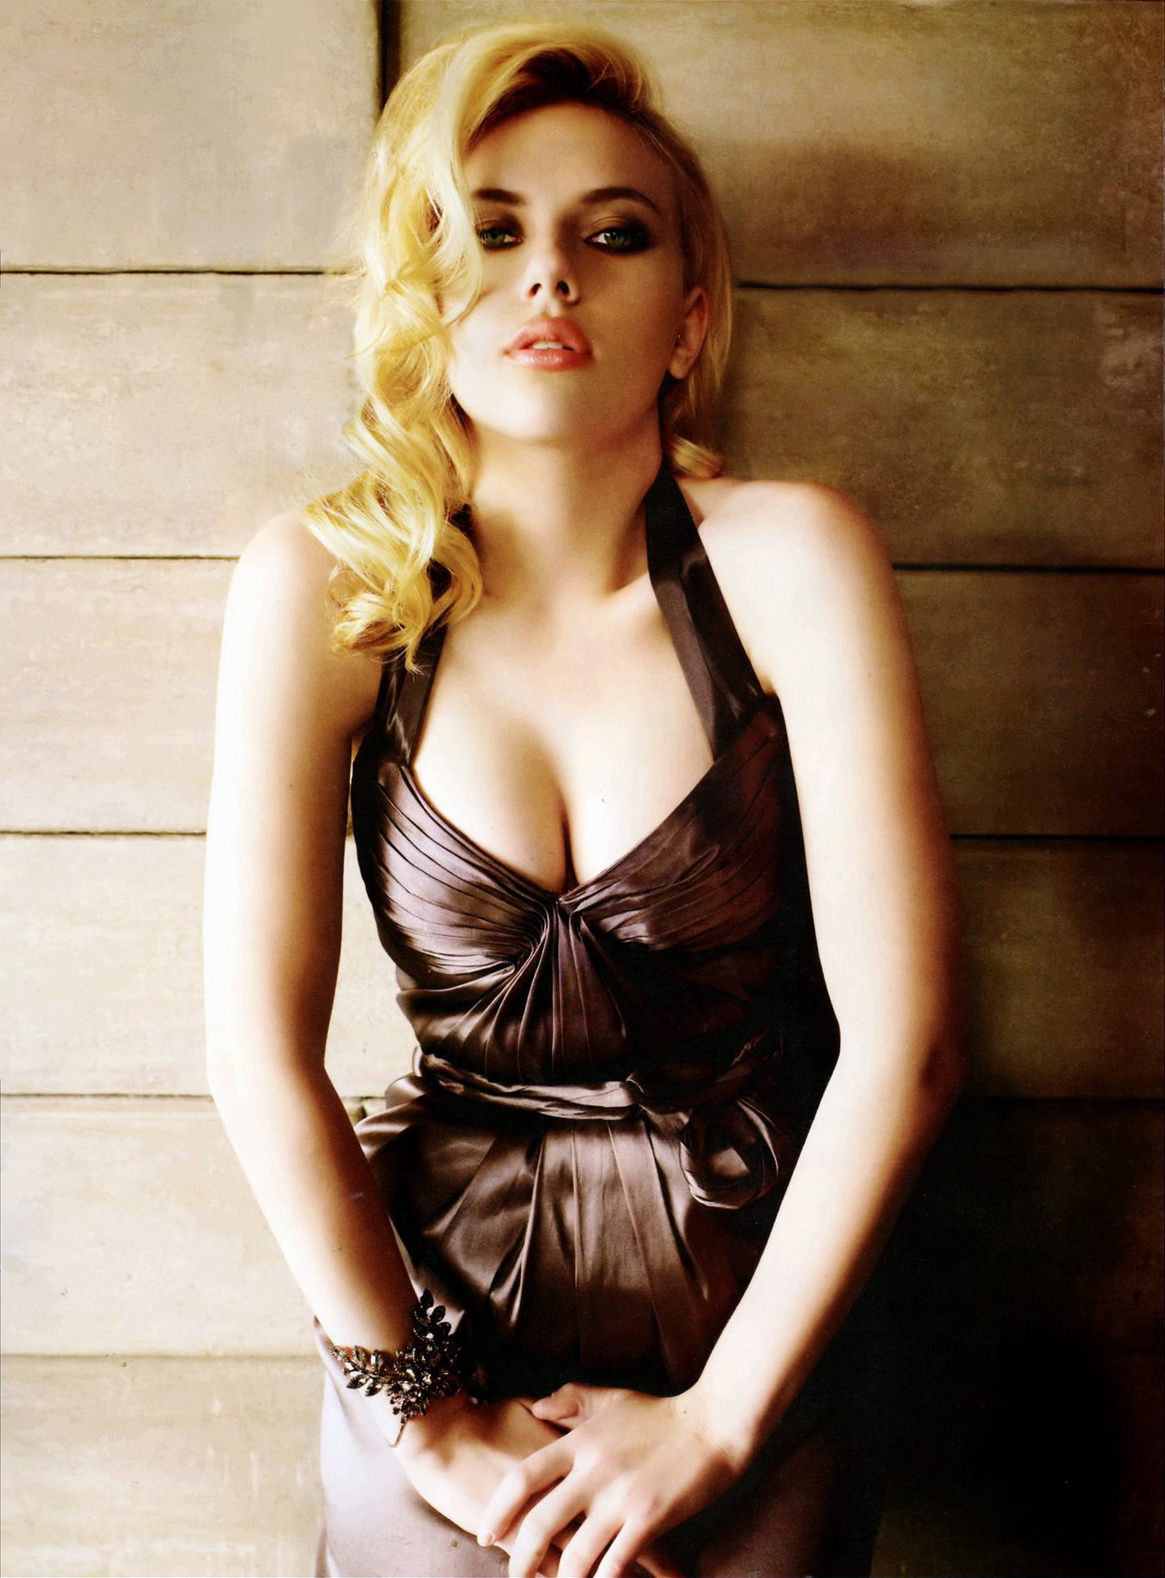 scarlett johansson model - photo #12